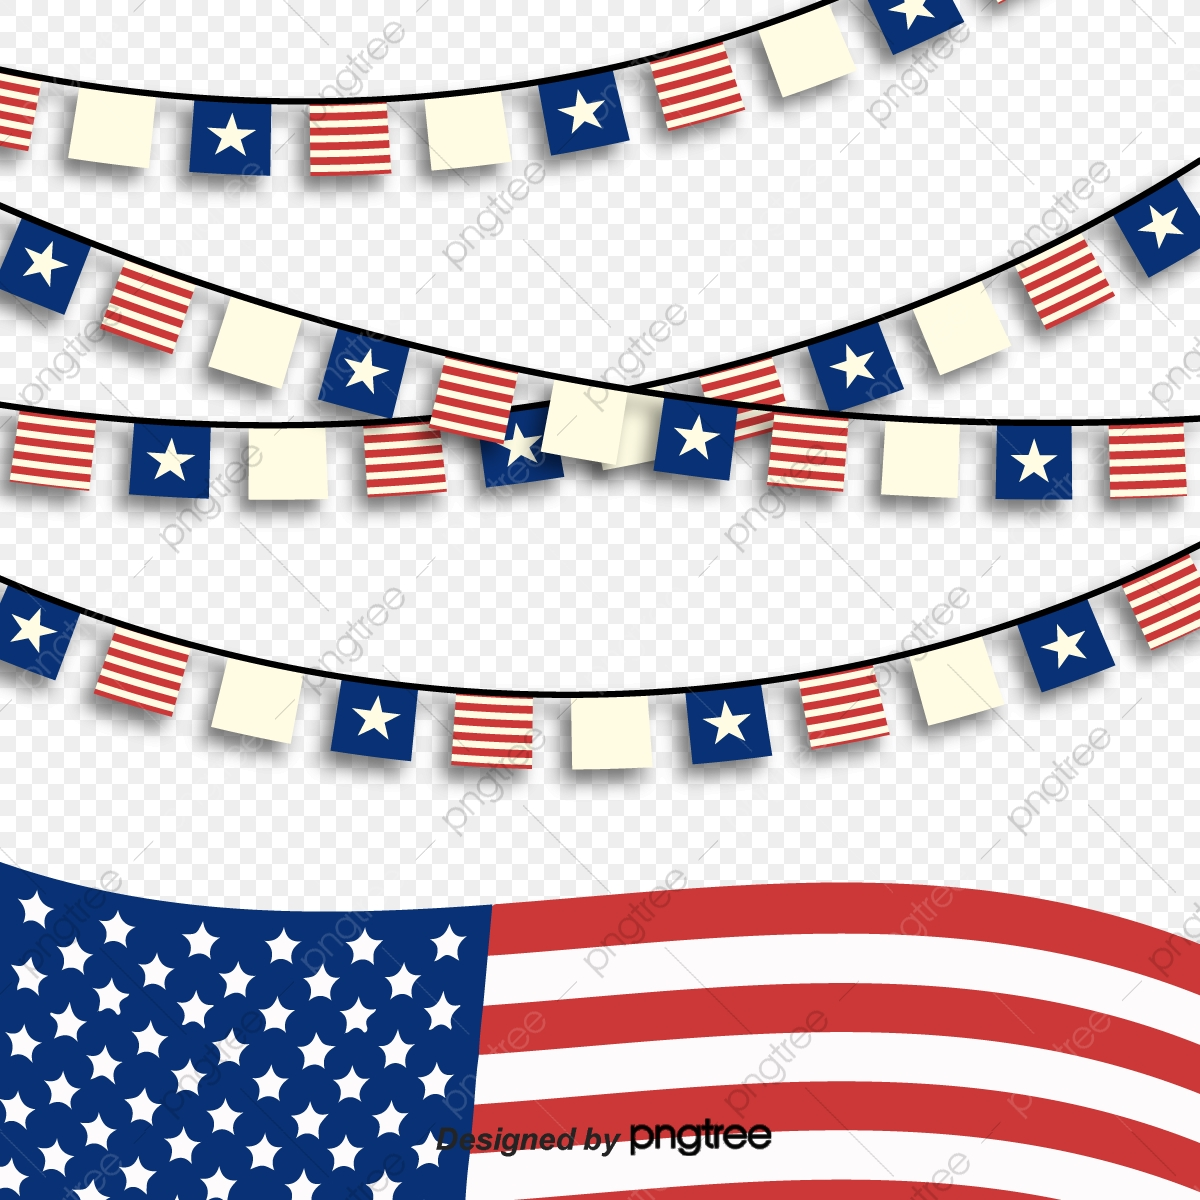 Presidential Day Decoration Material American Flag Colored